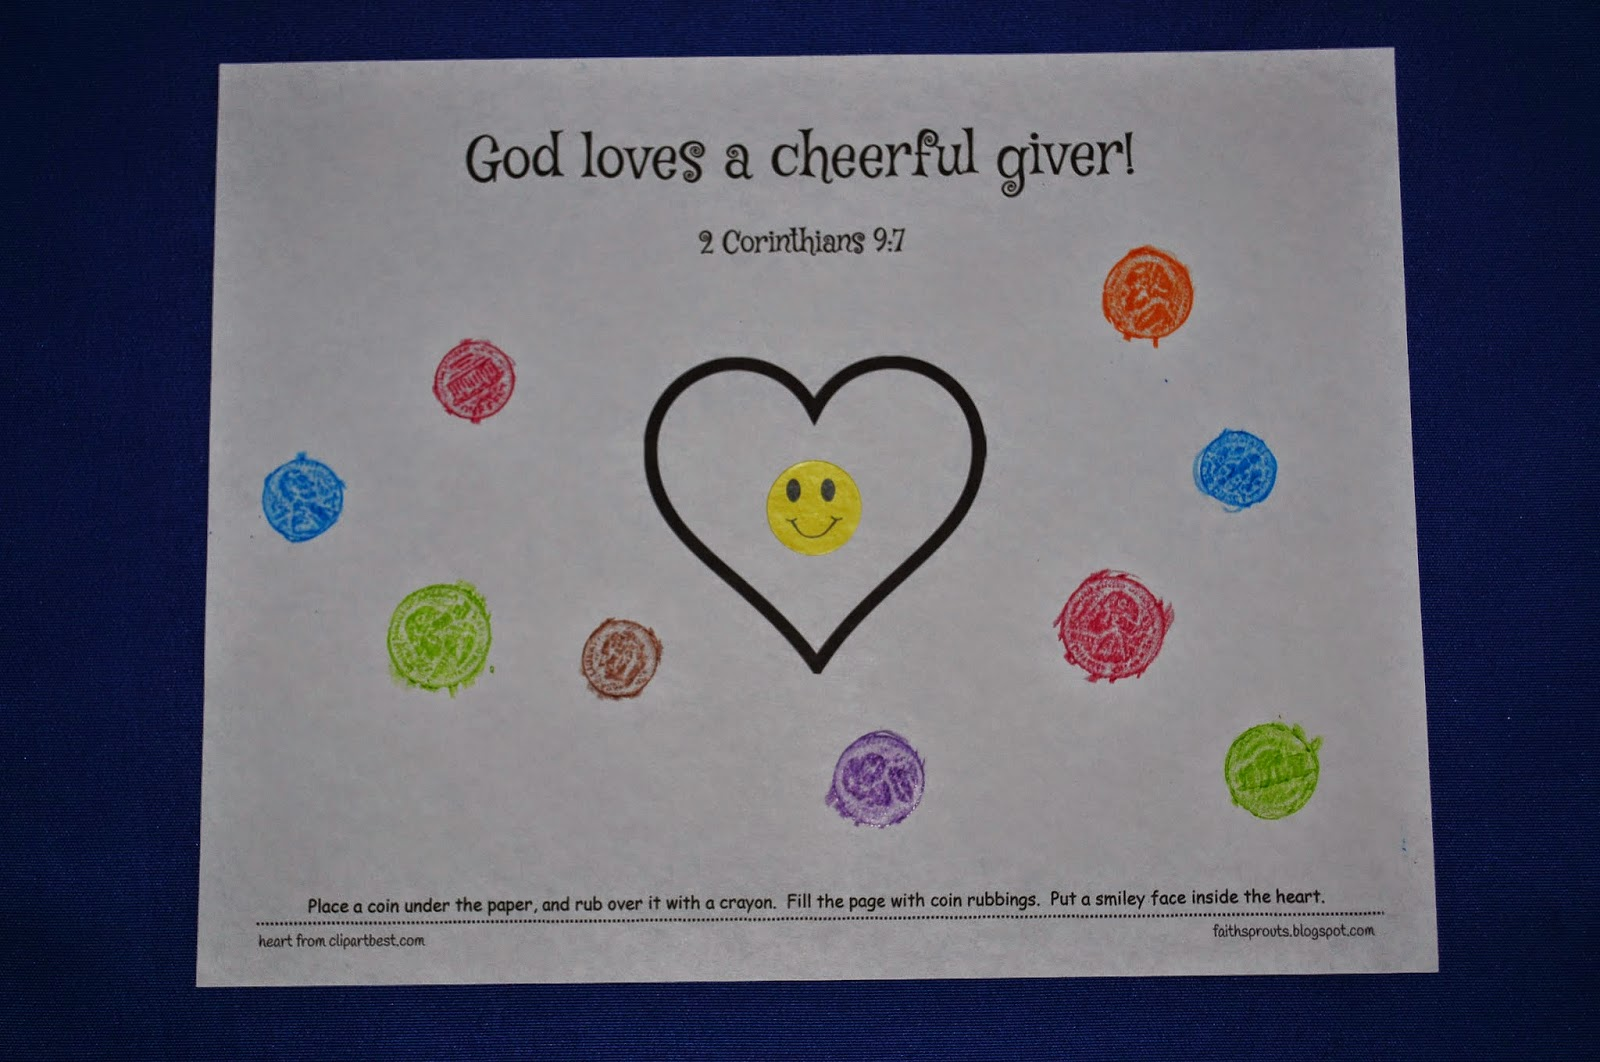 god loves a cheerful giver coloring page - faith sprouts a cheerful giver